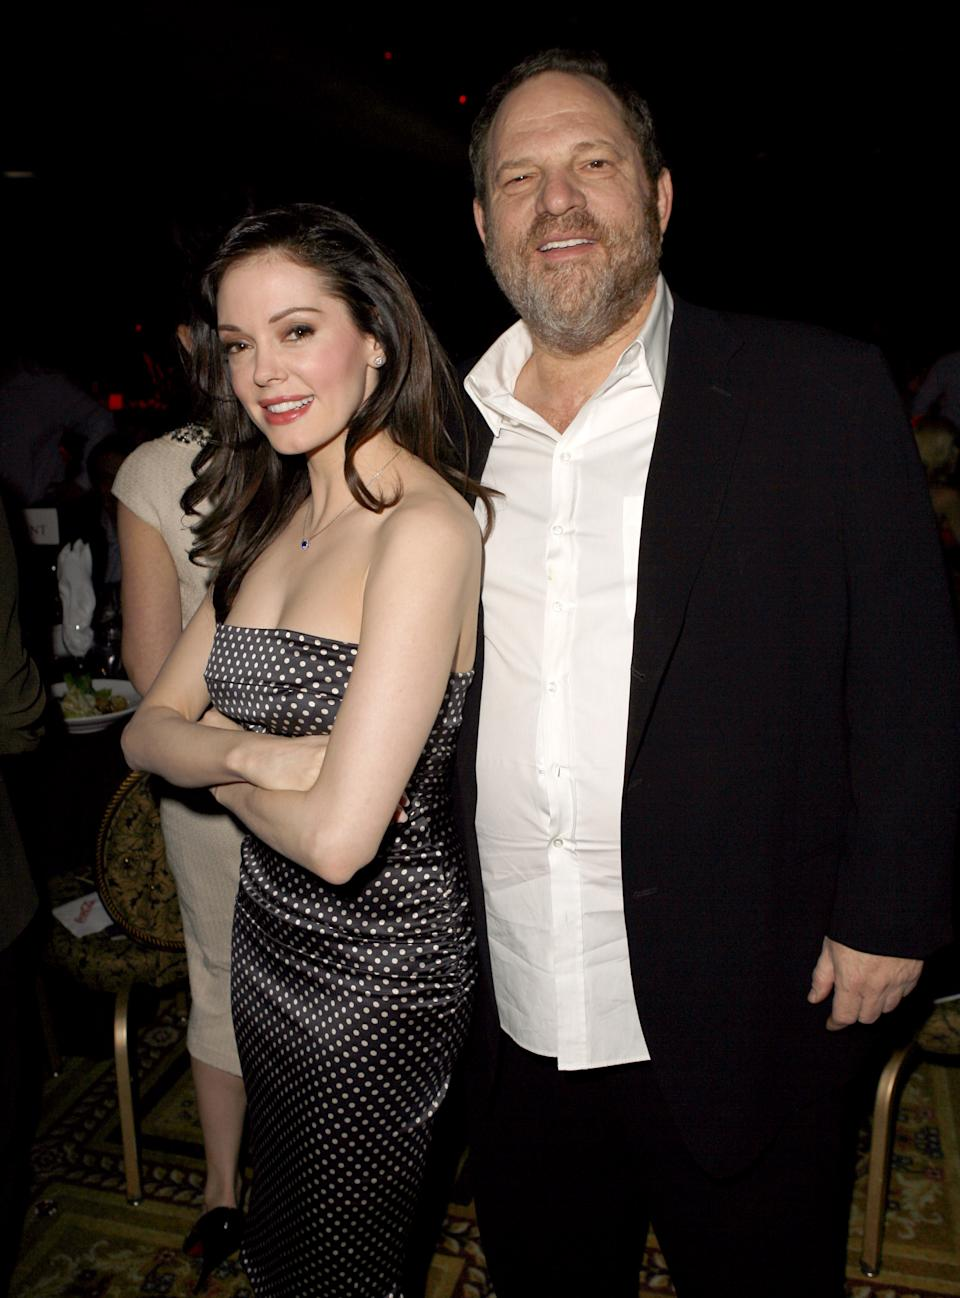 Rose McGowan and Harvey Weinstein during 2007 ShoWest Award Ceremony - Coca-Cola Green Room and Backstage at Paris Hotel in Las Vegas, Nevada, United States. (Photo by Jeff Vespa/WireImage for Rogers & Cowan)